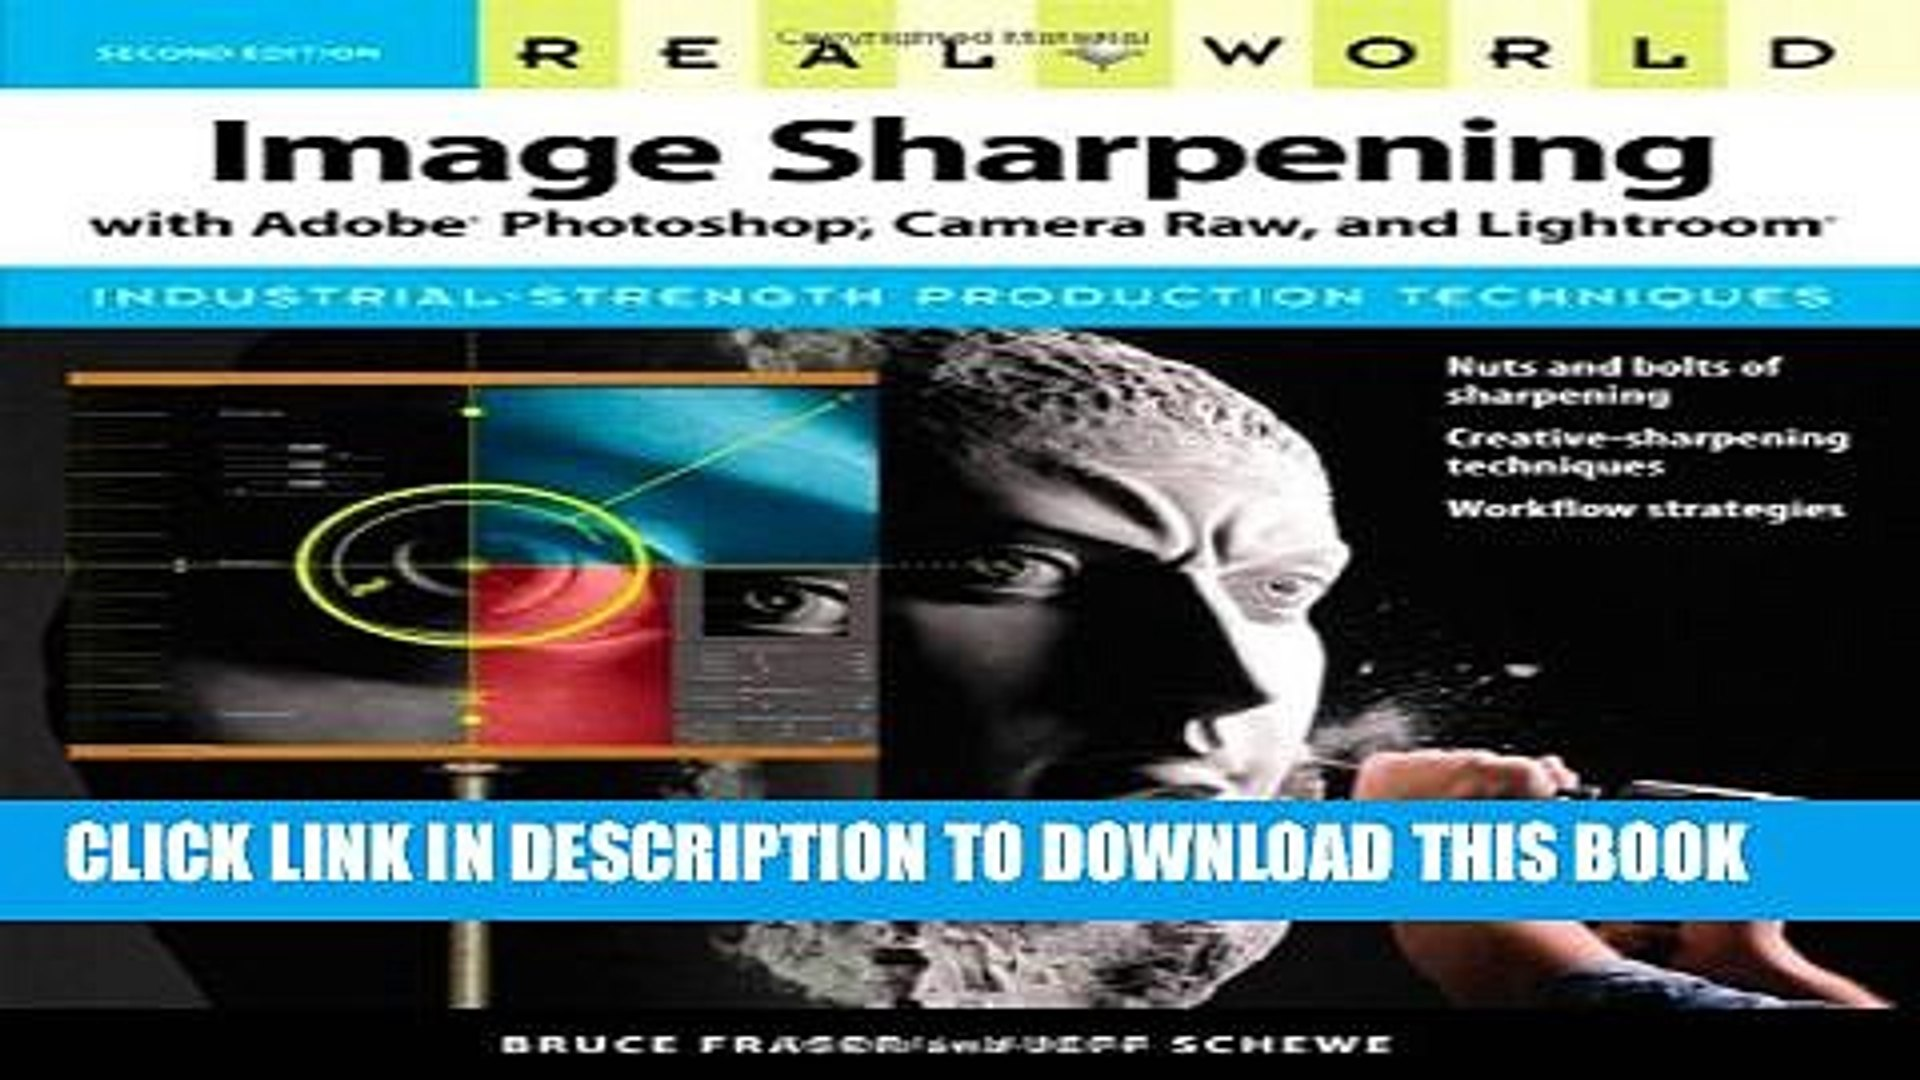 [PDF] Real World Image Sharpening with Adobe Photoshop, Camera Raw, and  Lightroom (2nd Edition)